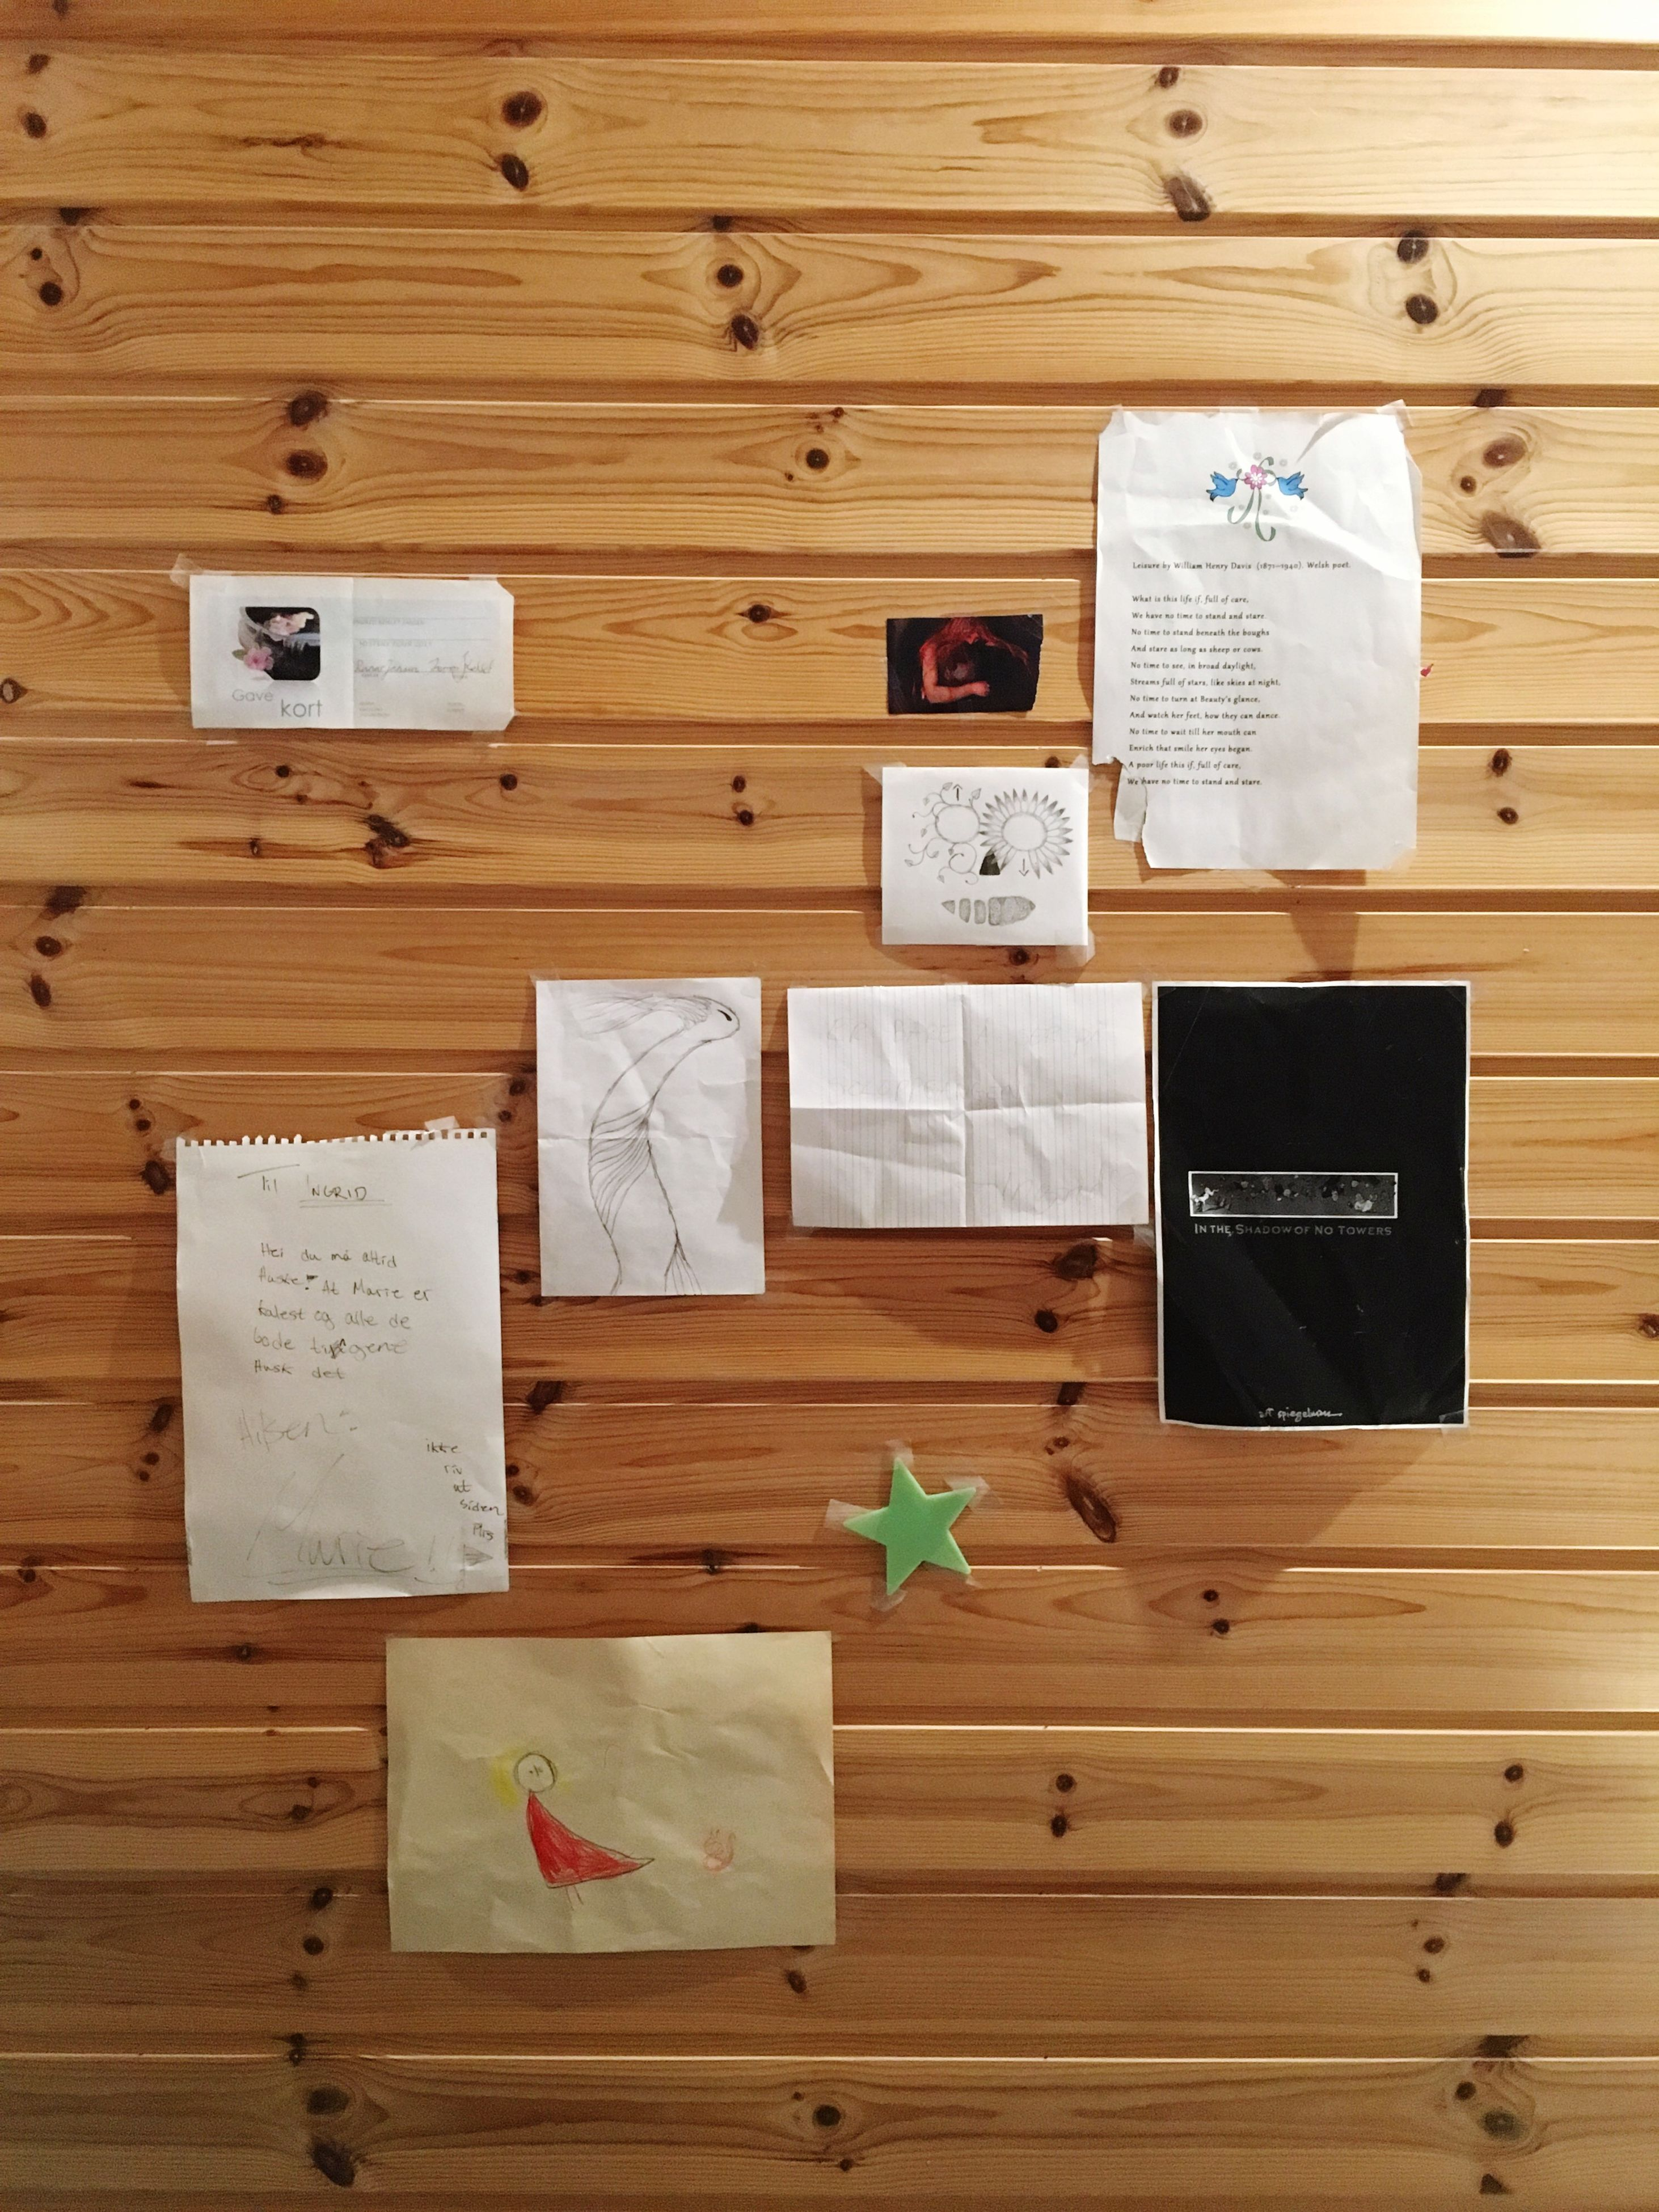 wood - material, communication, text, table, paper, directly above, no people, wood grain, old-fashioned, note - message, indoors, day